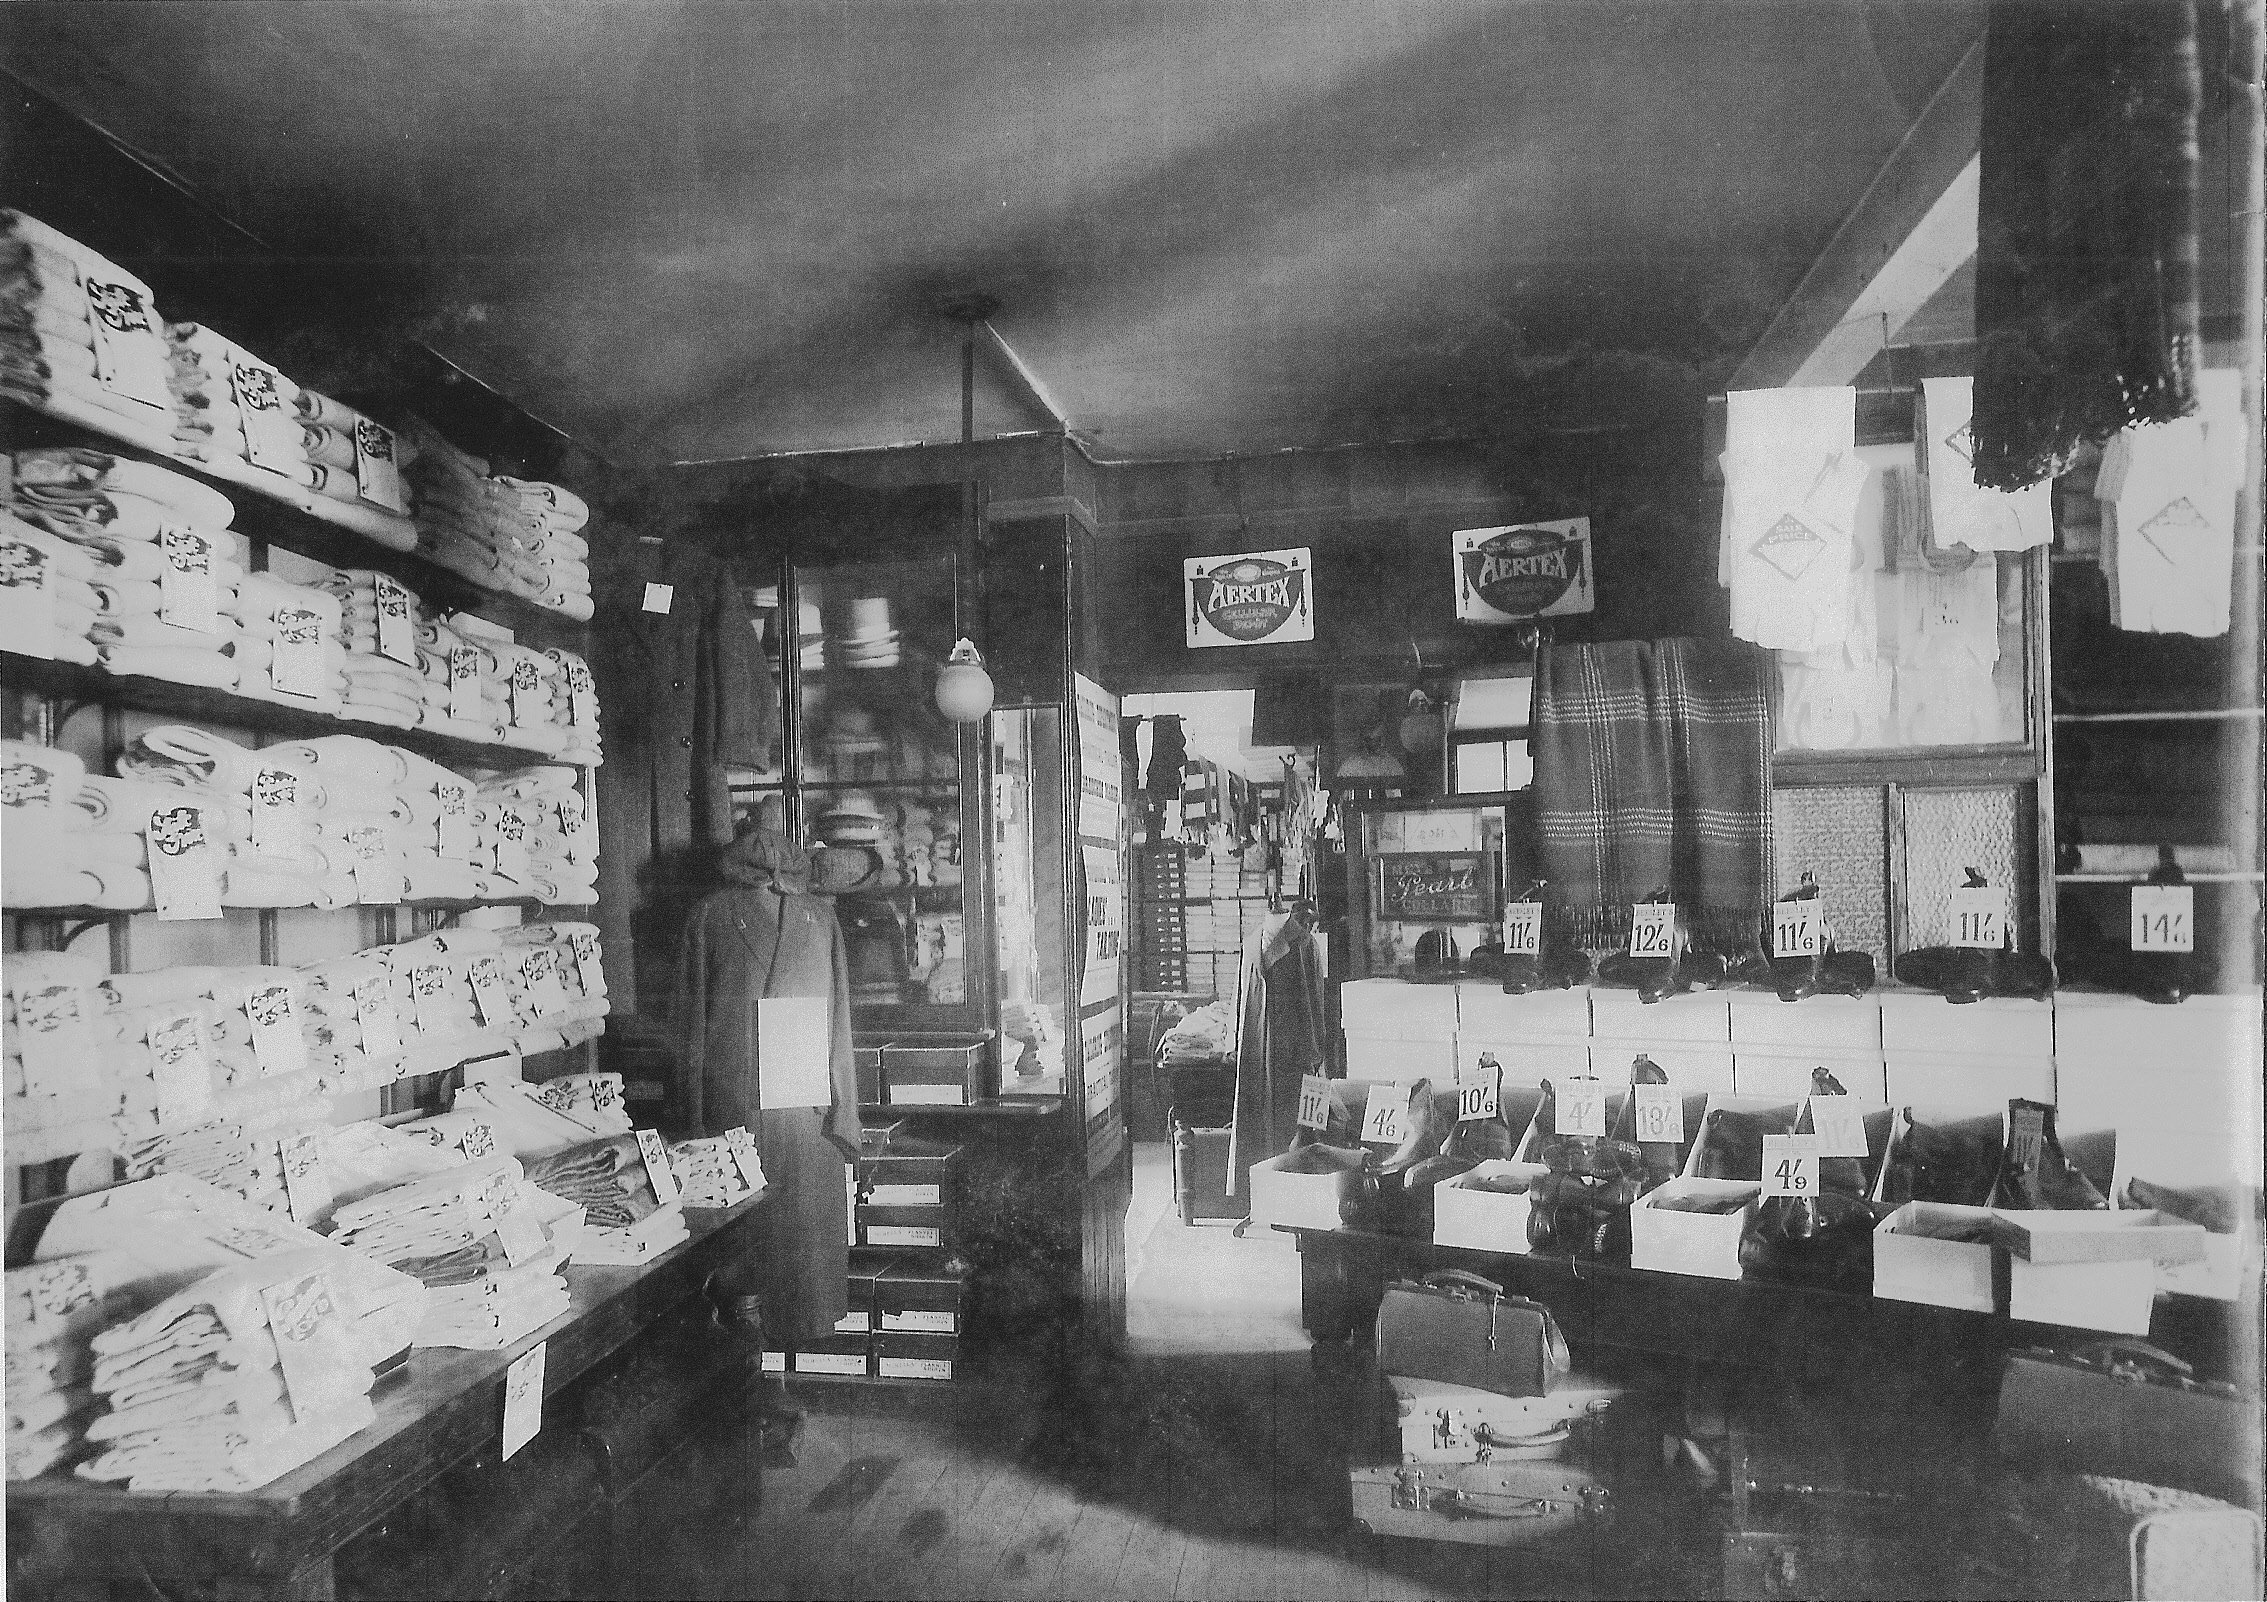 The interior of Beesley's shop in 1910